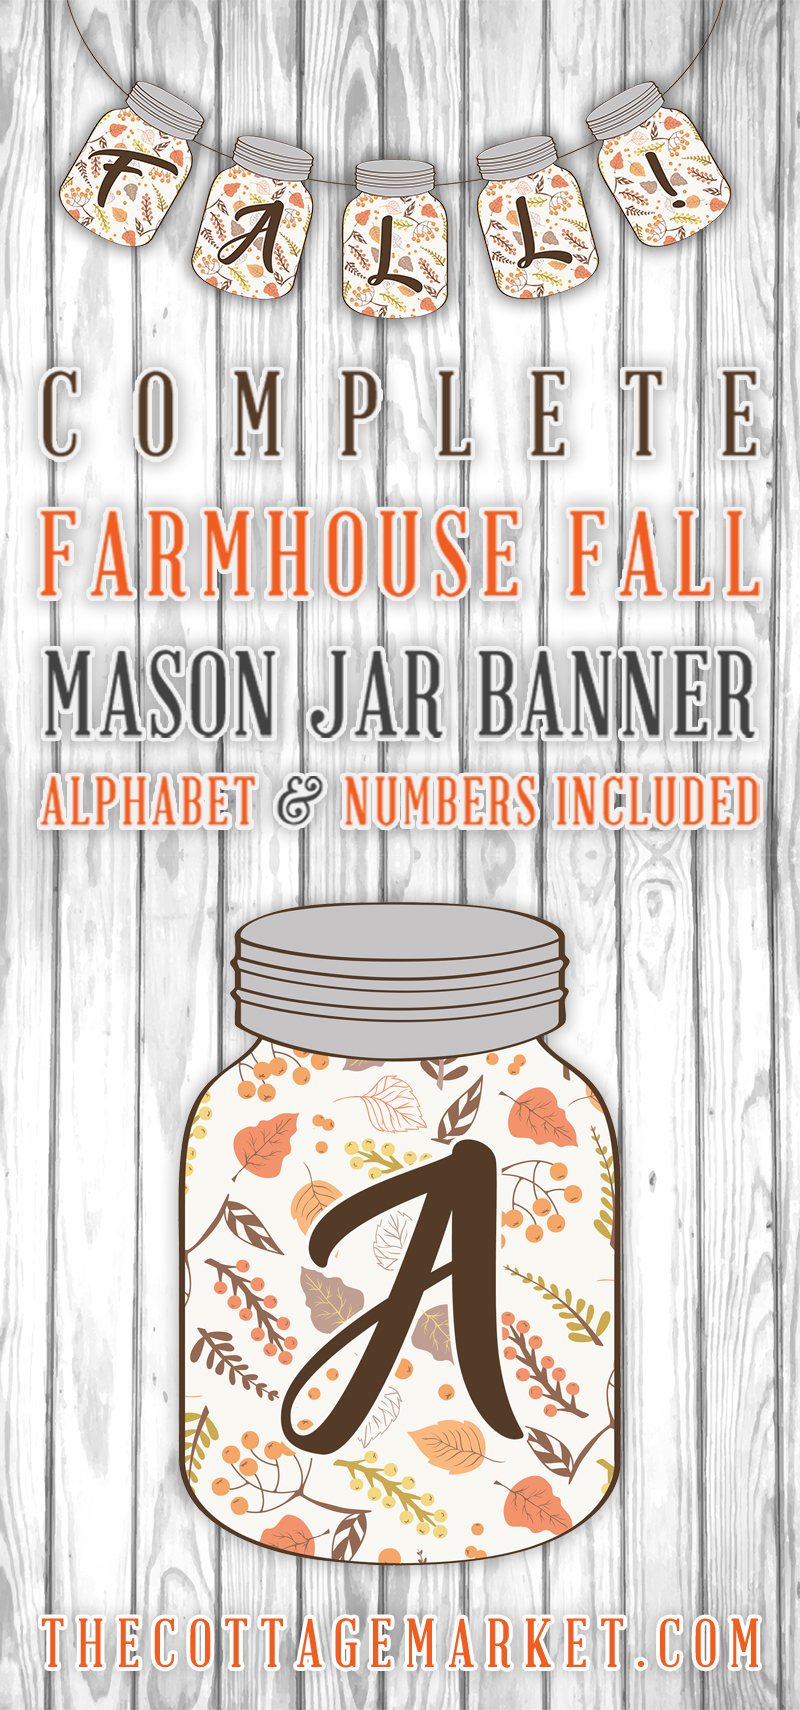 TCM-FALL-MASONJAR-BANNER-TOWER-2